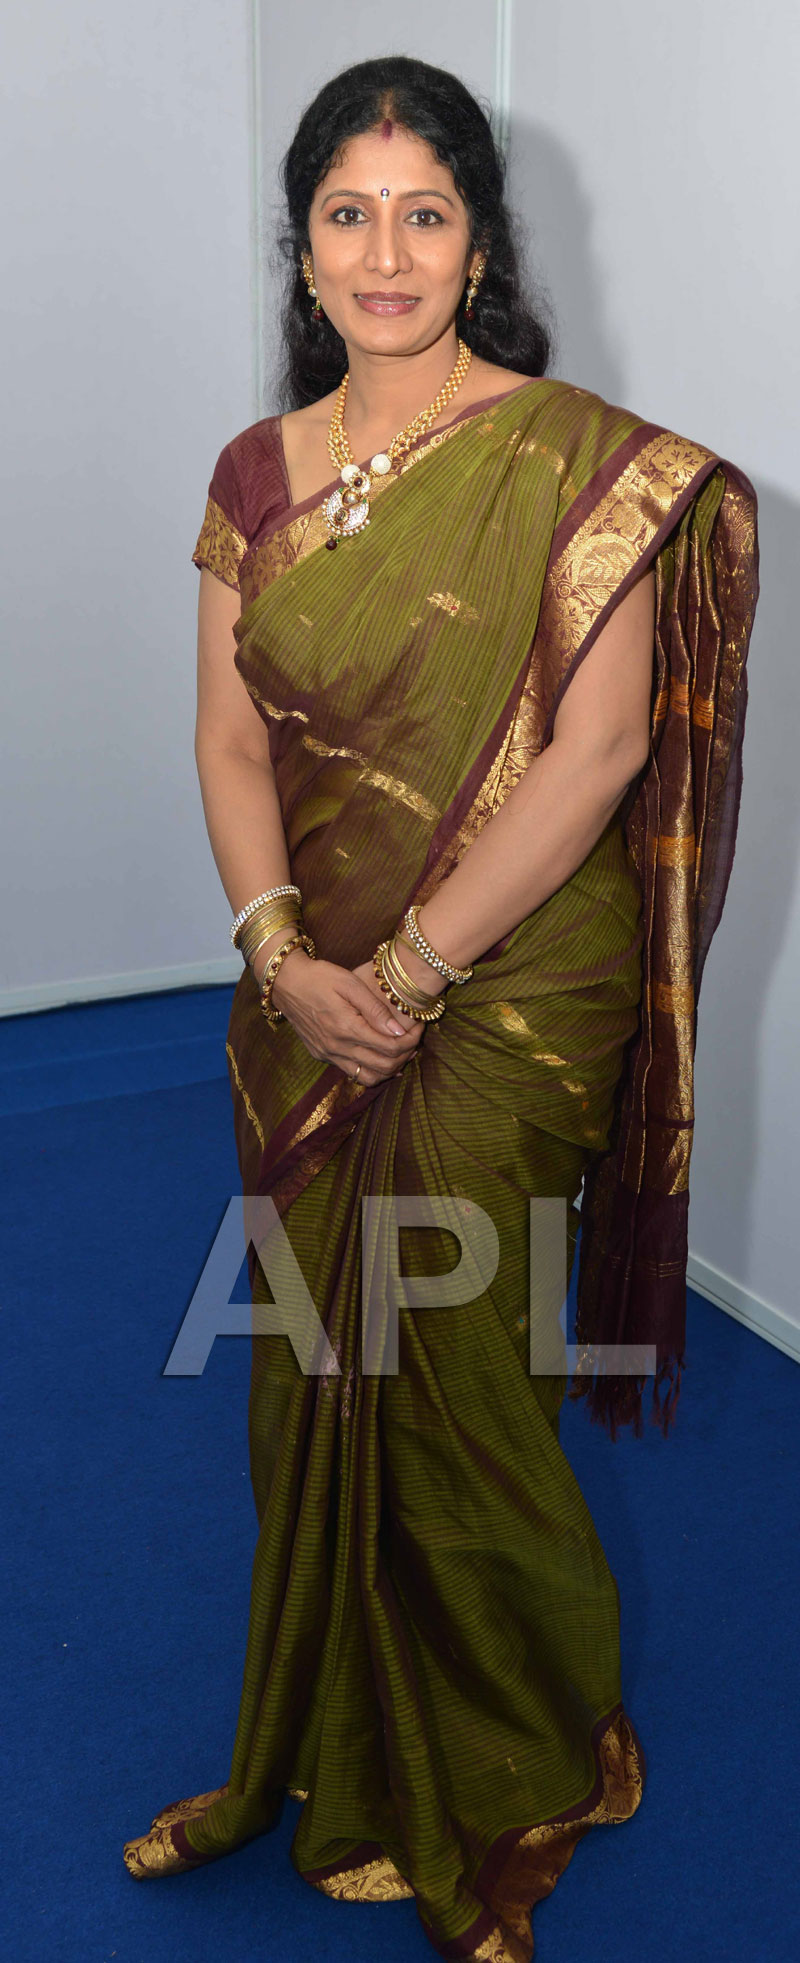 Styles N Weaves Expo - Inaugurated by Dr. Seetha and Shravani - Picture 11